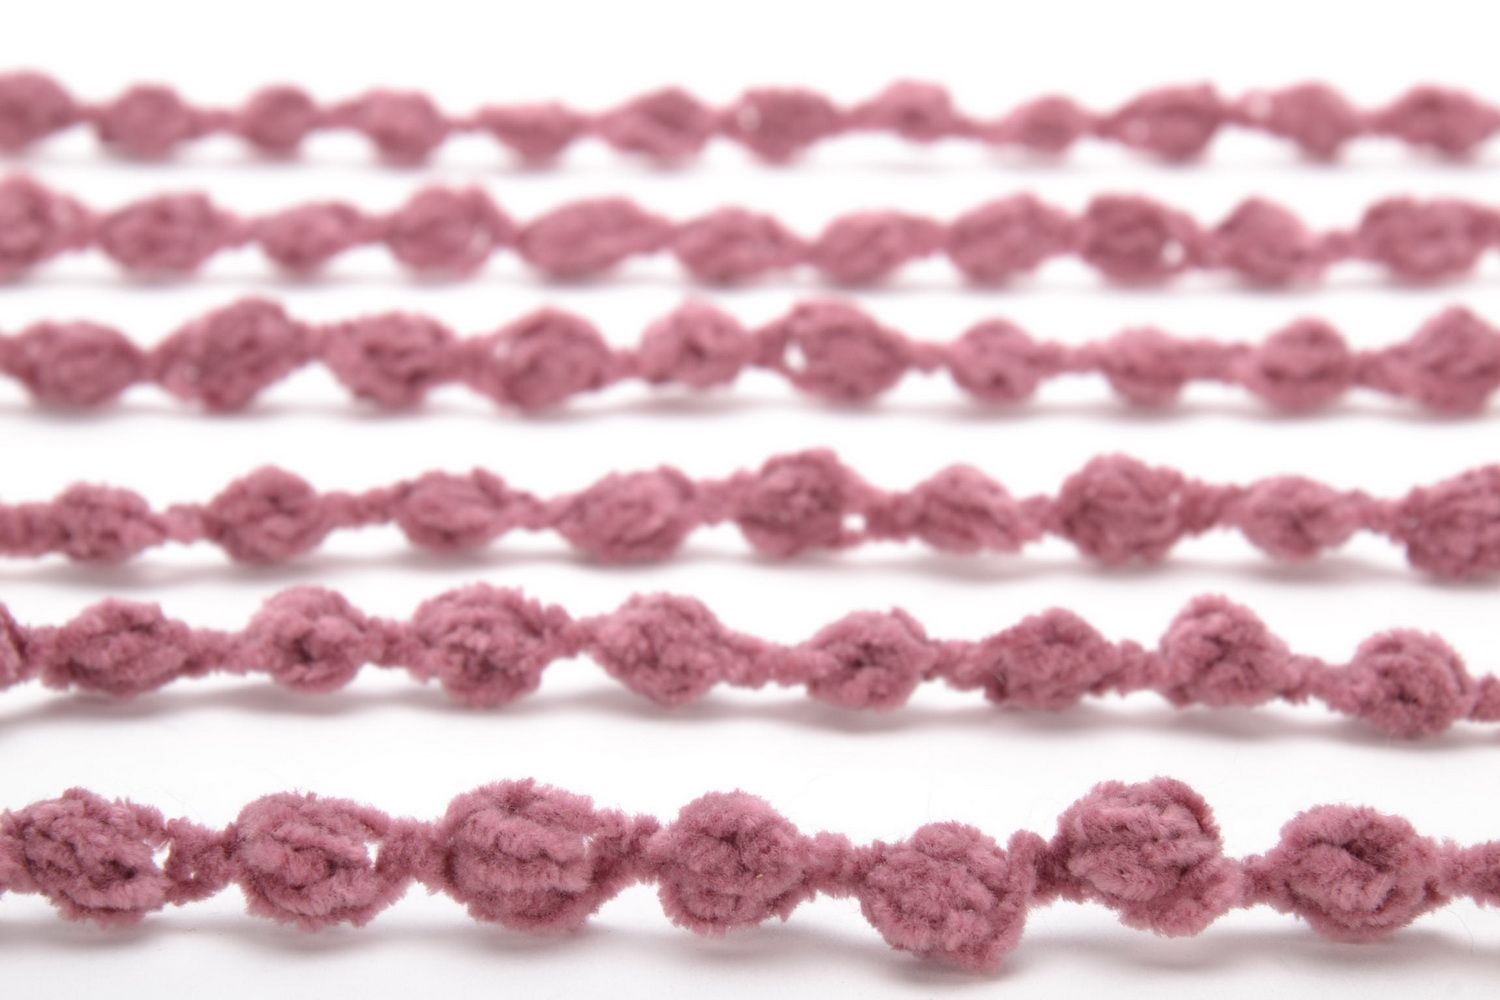 Crochet multi-row necklace photo 2